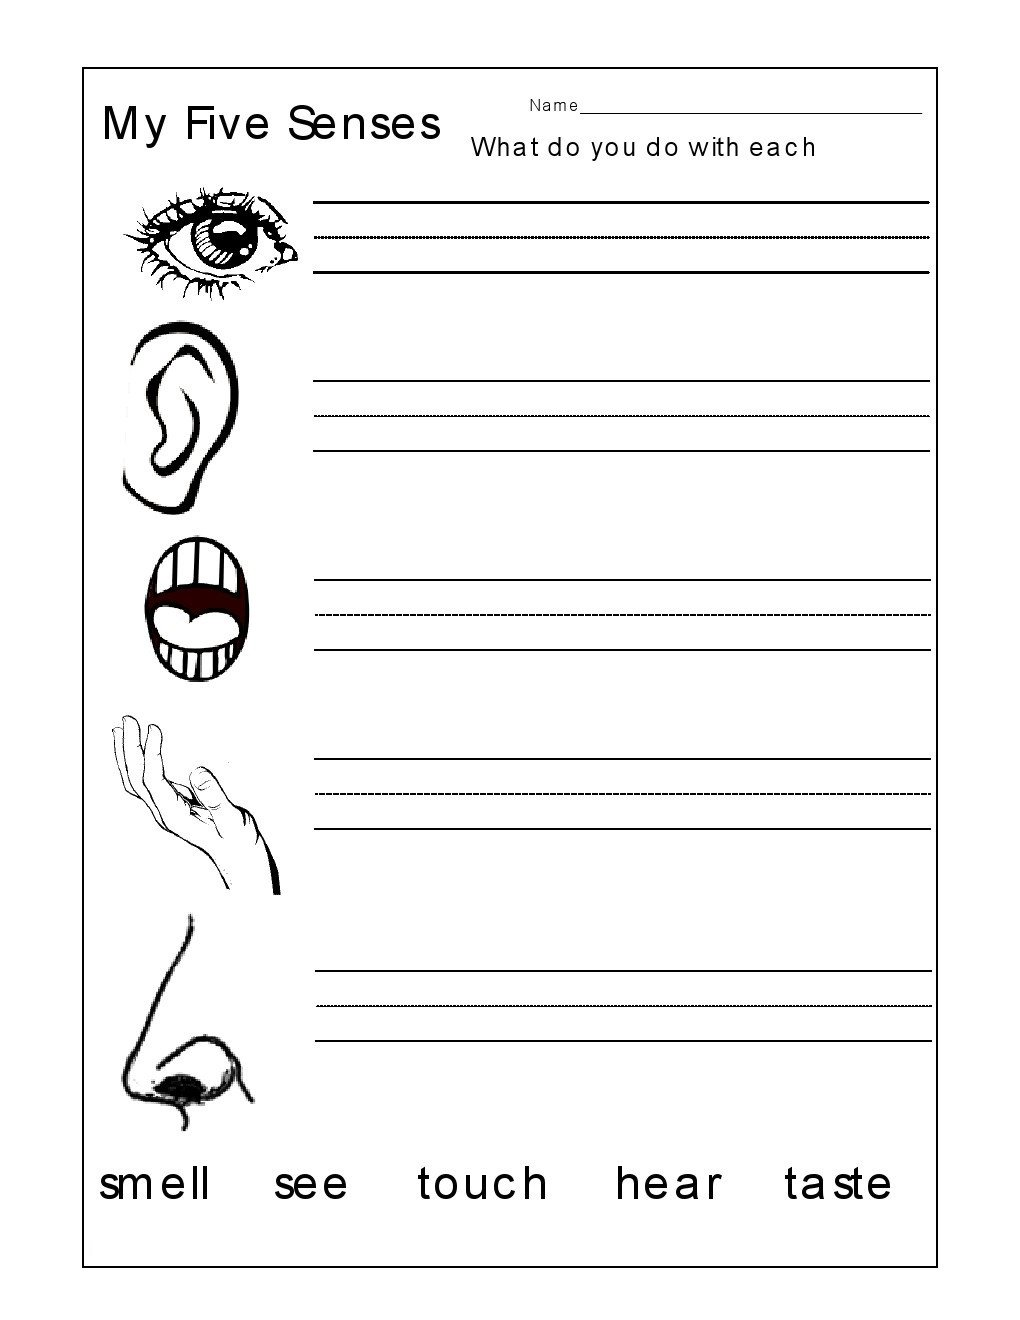 5 Senses Kindergarten Worksheets Kindergarten Worksheets Kindergarten Worksheets the 5